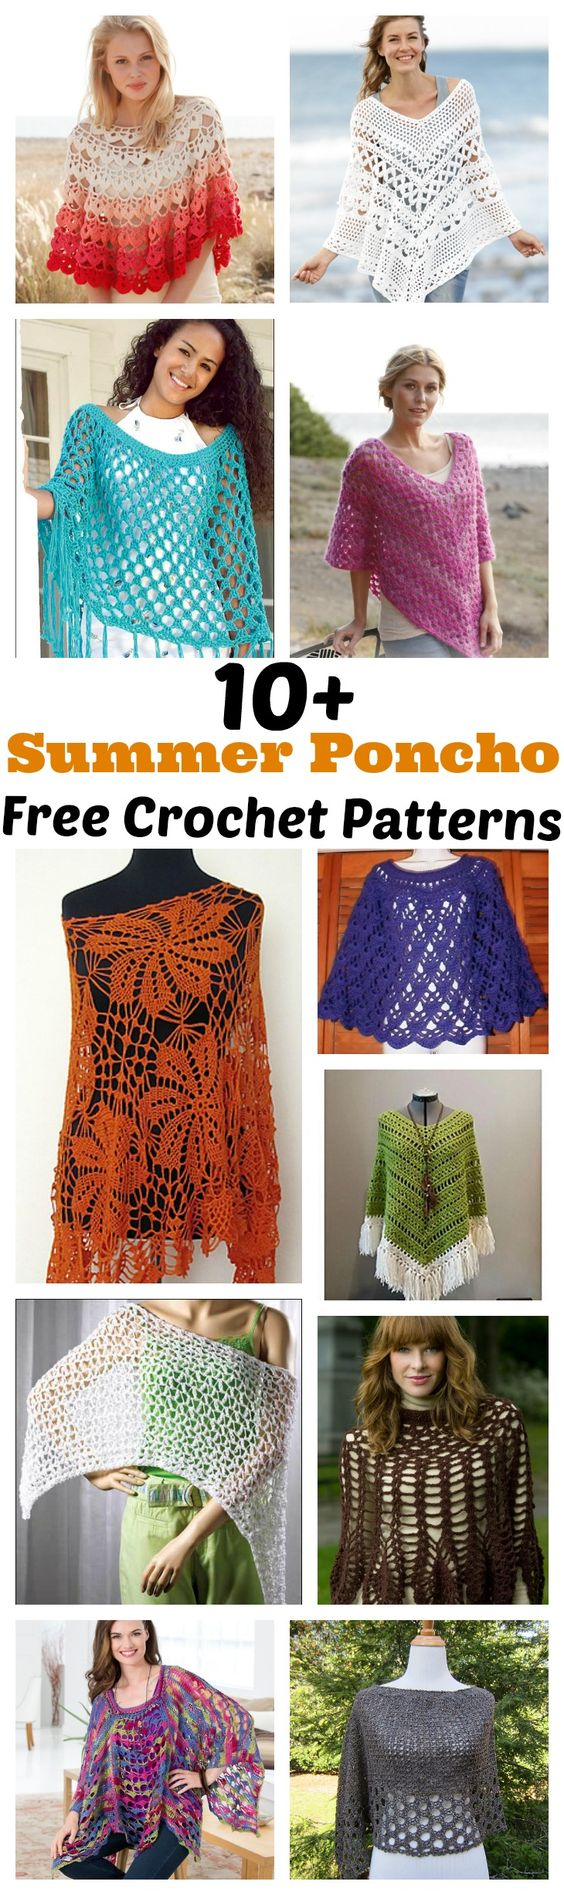 550 best Crochet Amigurumi images on Pinterest | Crochet free ...